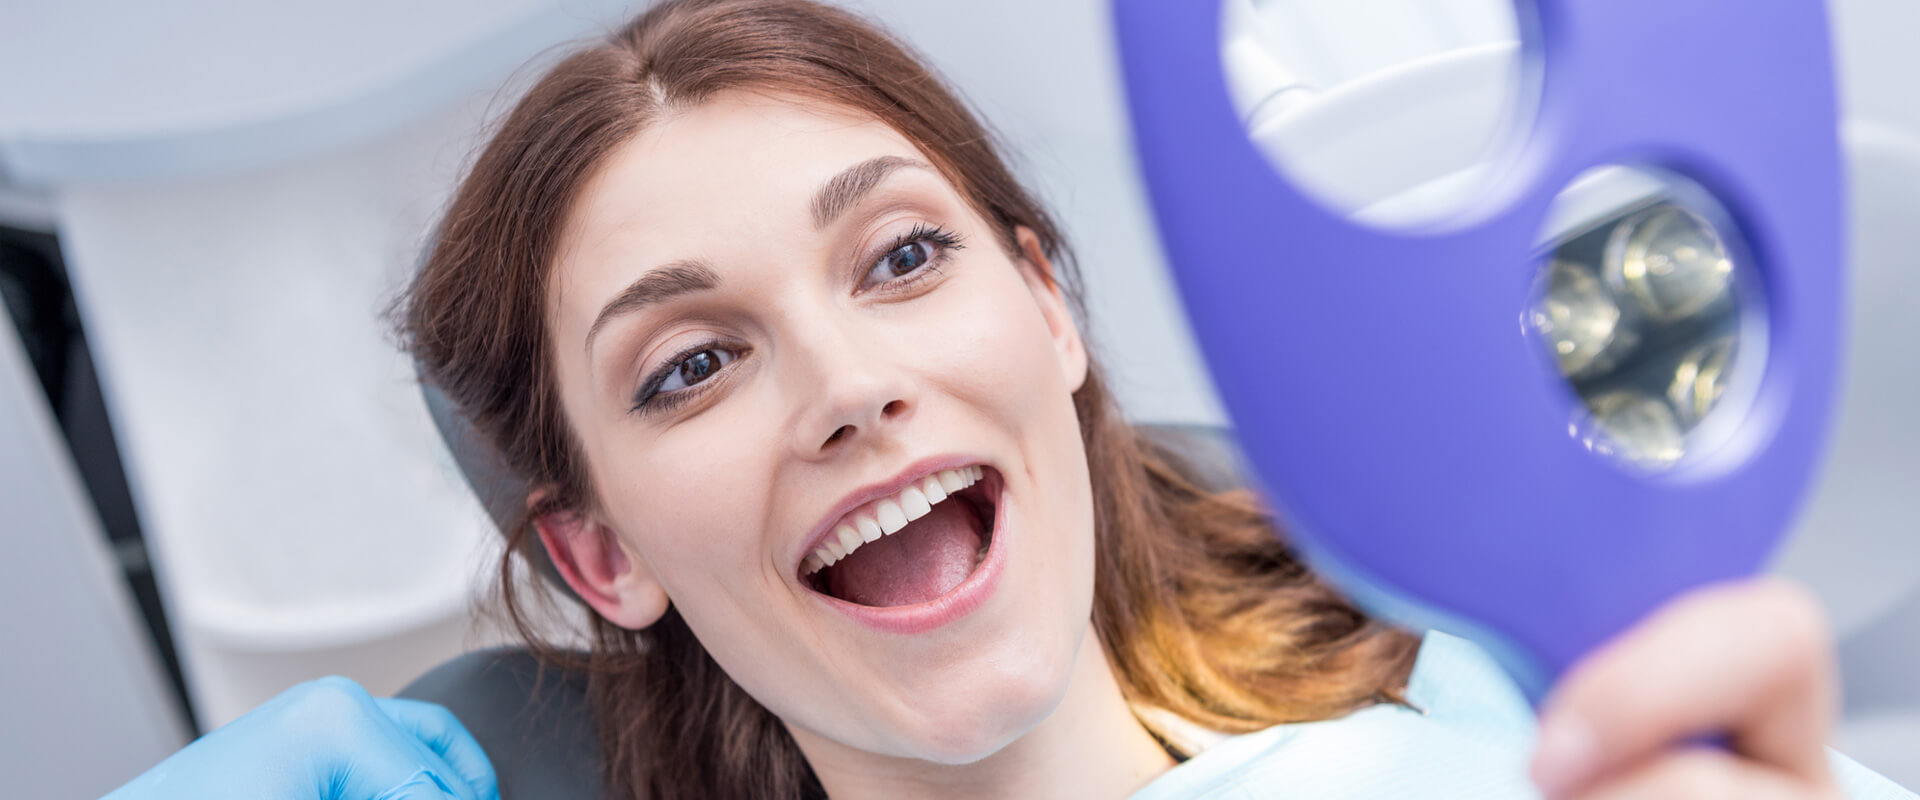 Smiling female patient checking her new smile using a hand mirror